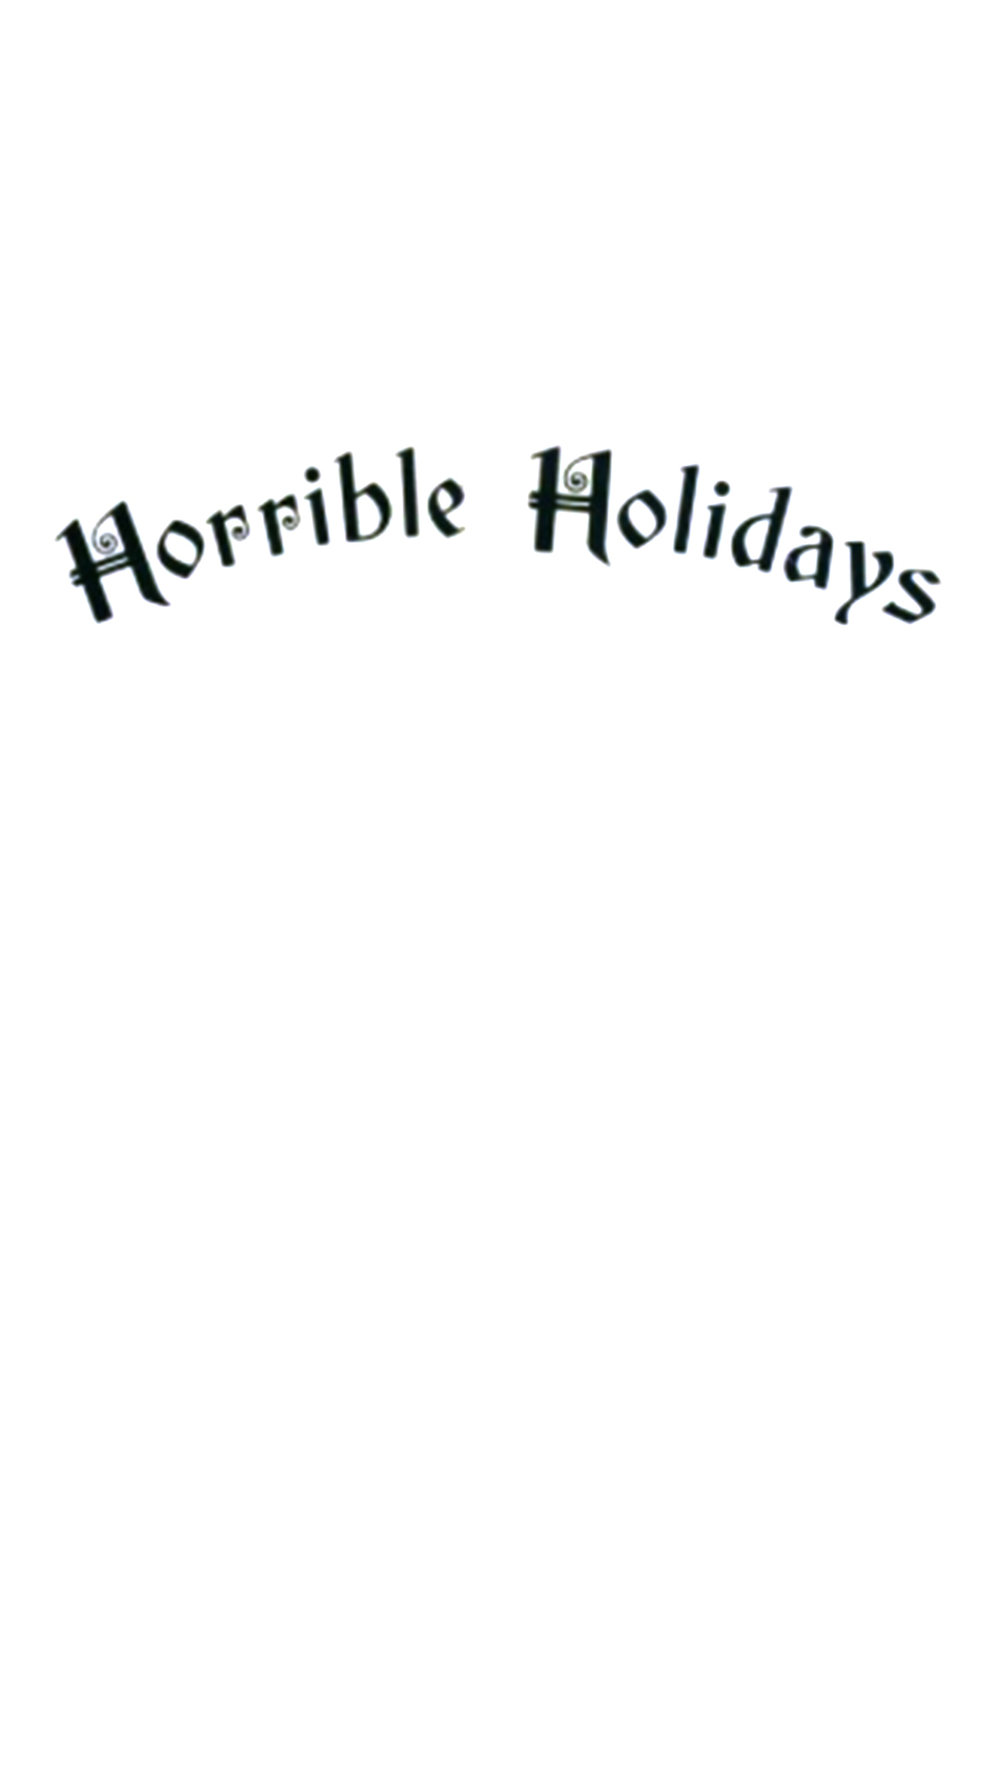 horribleholidays.jpg